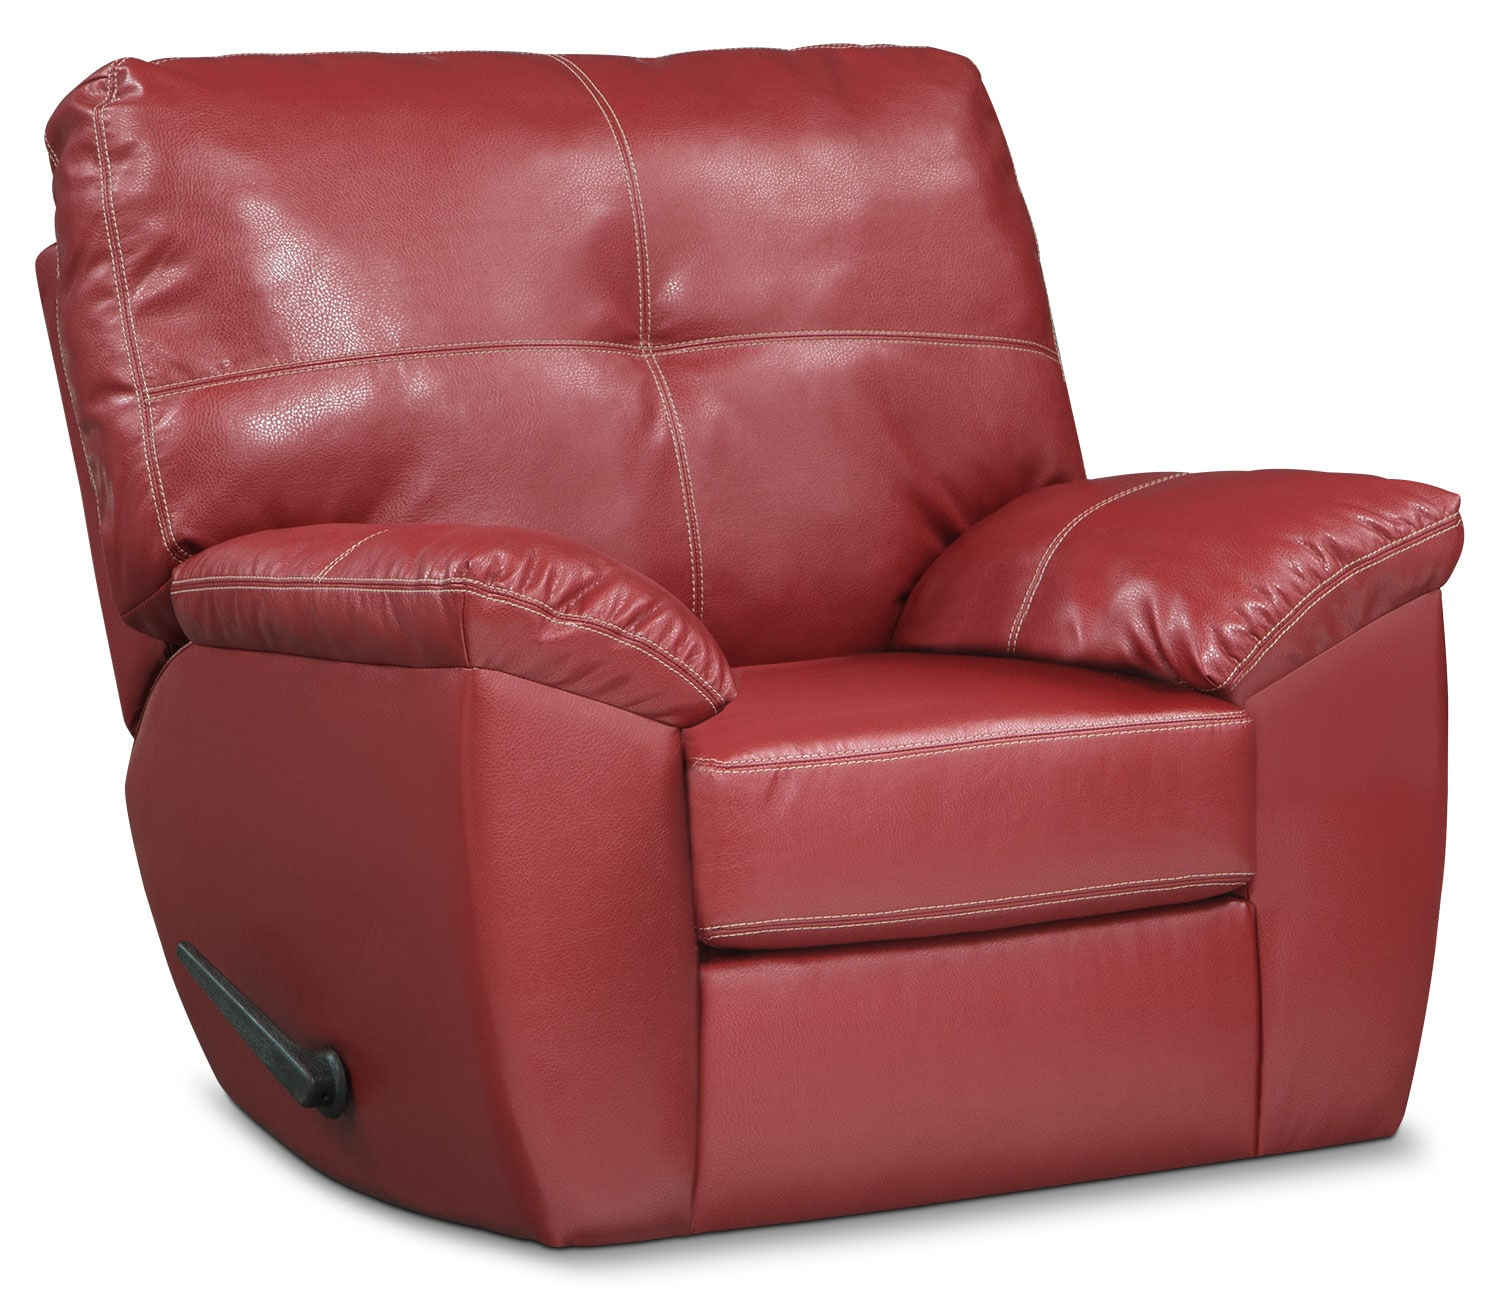 Living Room Furniture   Ricardo Glider Recliner   Cardinal